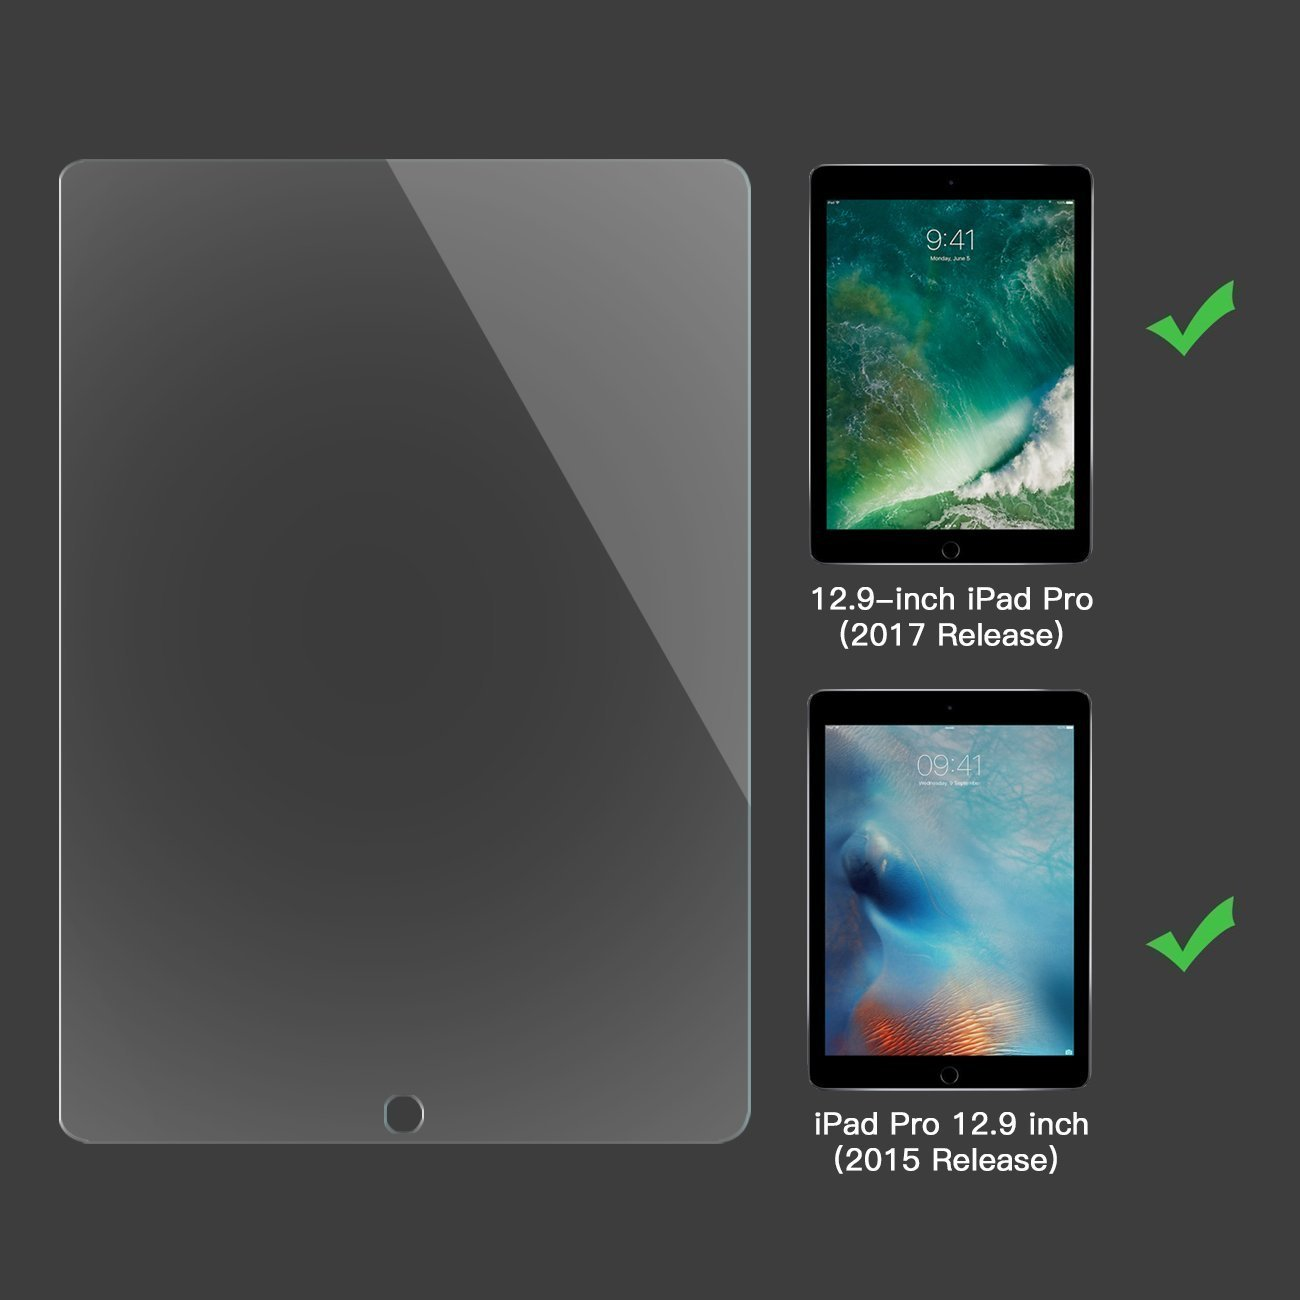 [2 PACK] iPad Pro 12.9 Screen Protector, SPARIN Multi-Touch Compatible / Bubble-Free / Anti-Scratch Tempered Glass Screen Protector For 12.9-Inch iPad Pro (2015, 2017 Release) by SPARIN (Image #2)